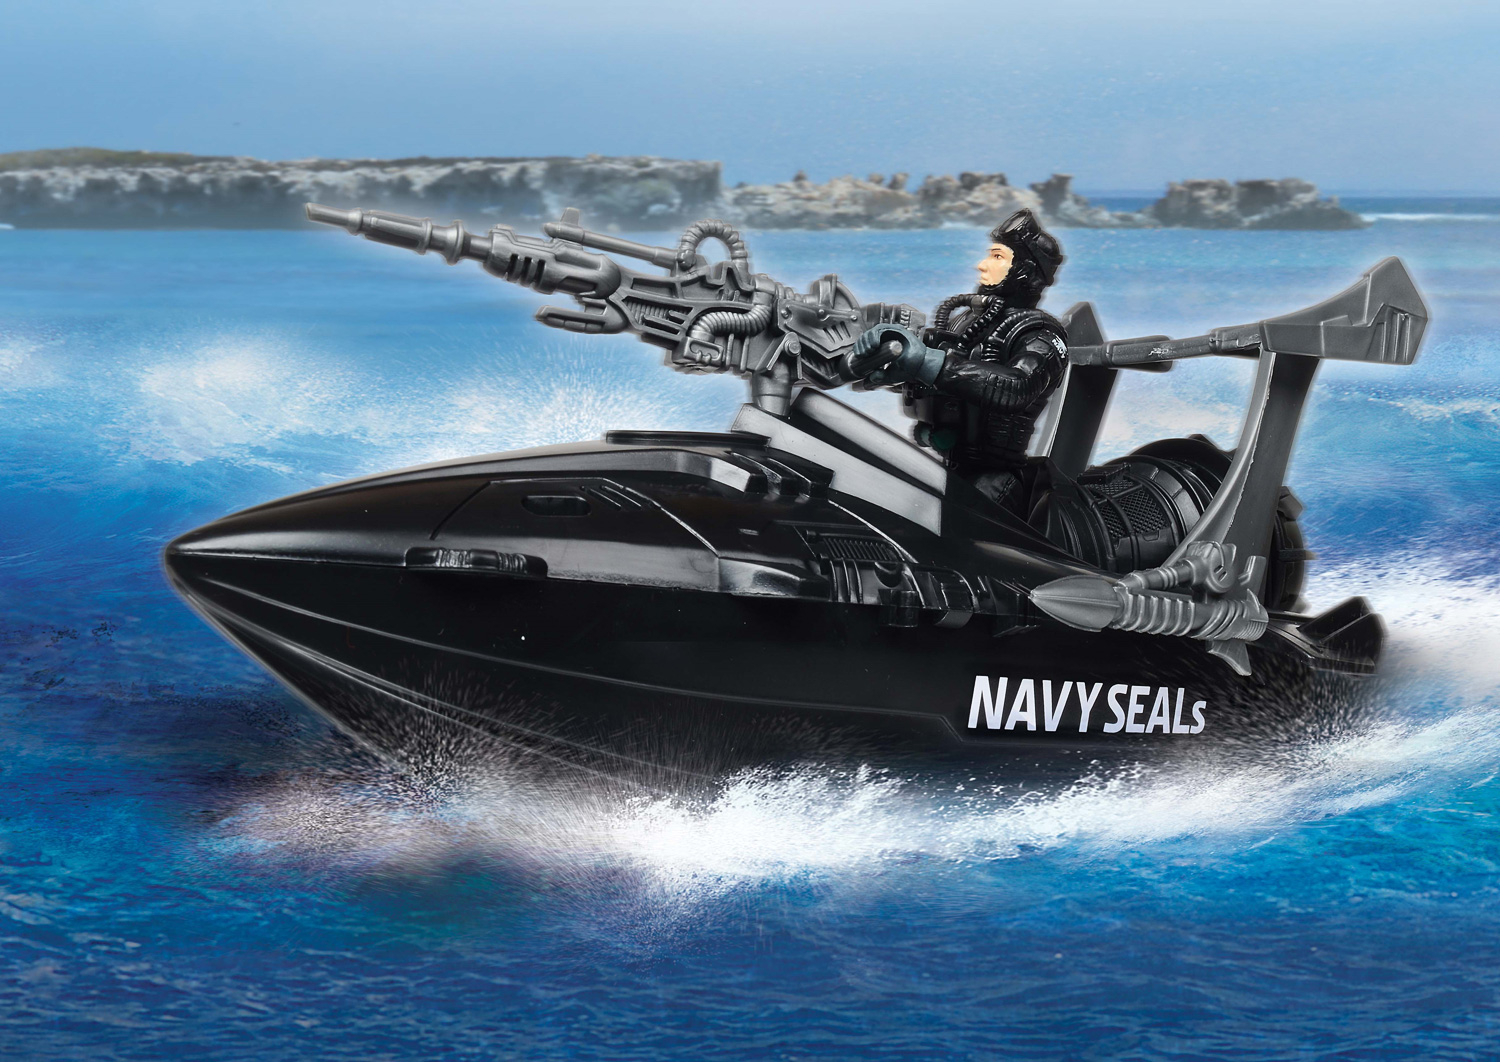 US Navy Seals Figure Speedboat Playset